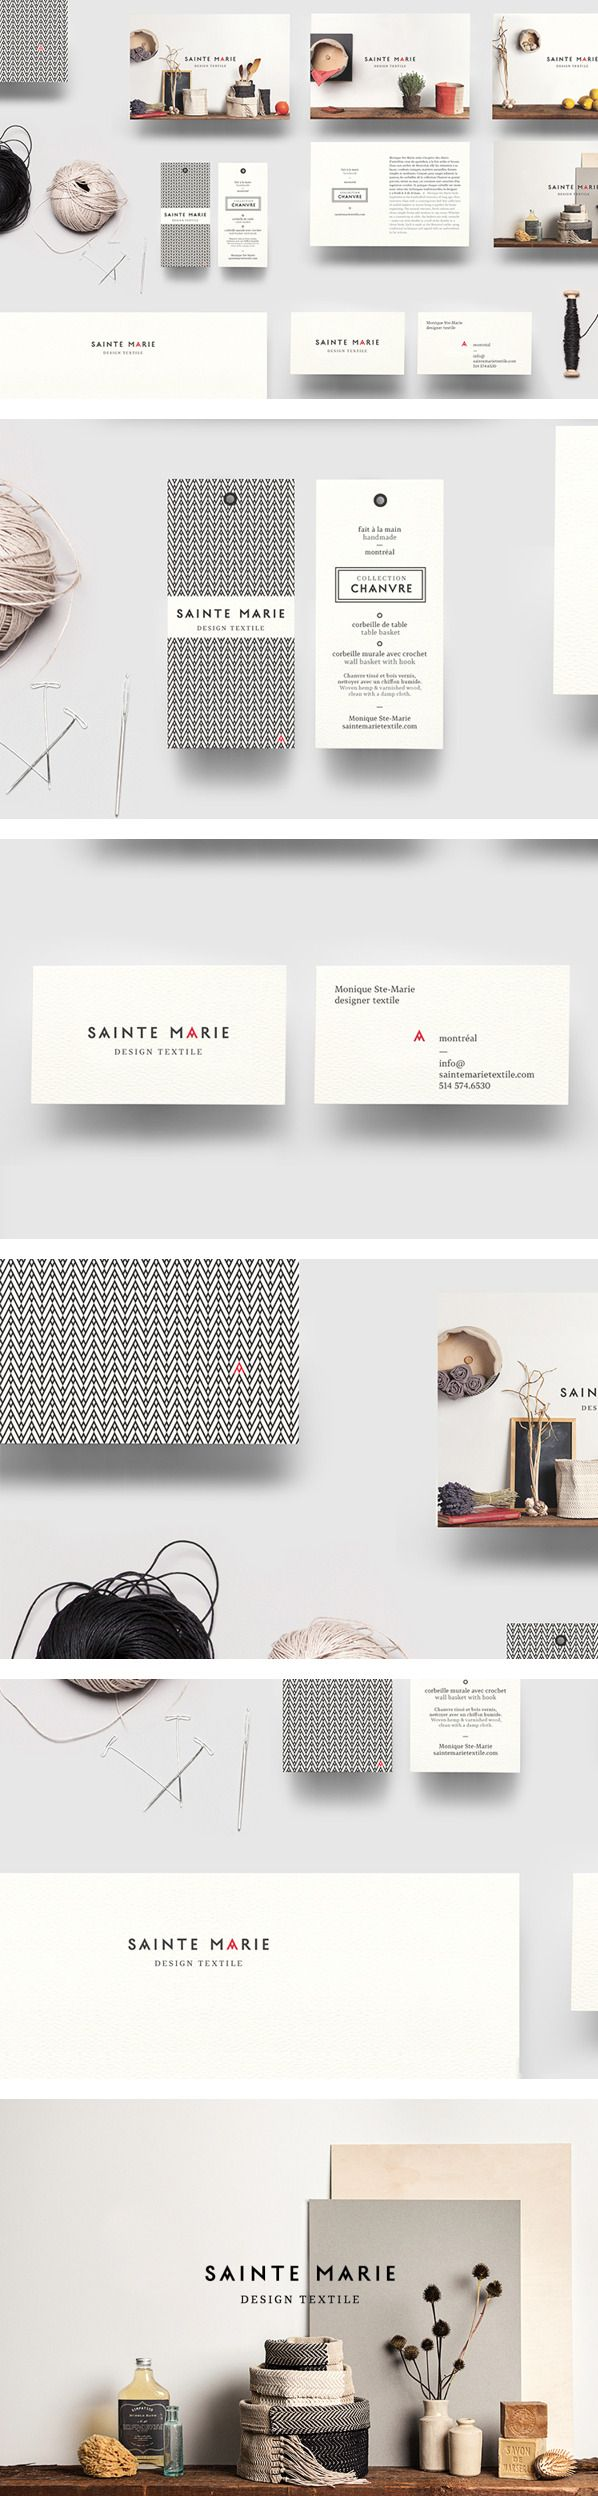 Cool Brand Identity Design on the Internet. Sainte Marie. #branding #brandidentity #identitydesign @ http://www.pinterest.com/alfredchong/brand-identity/